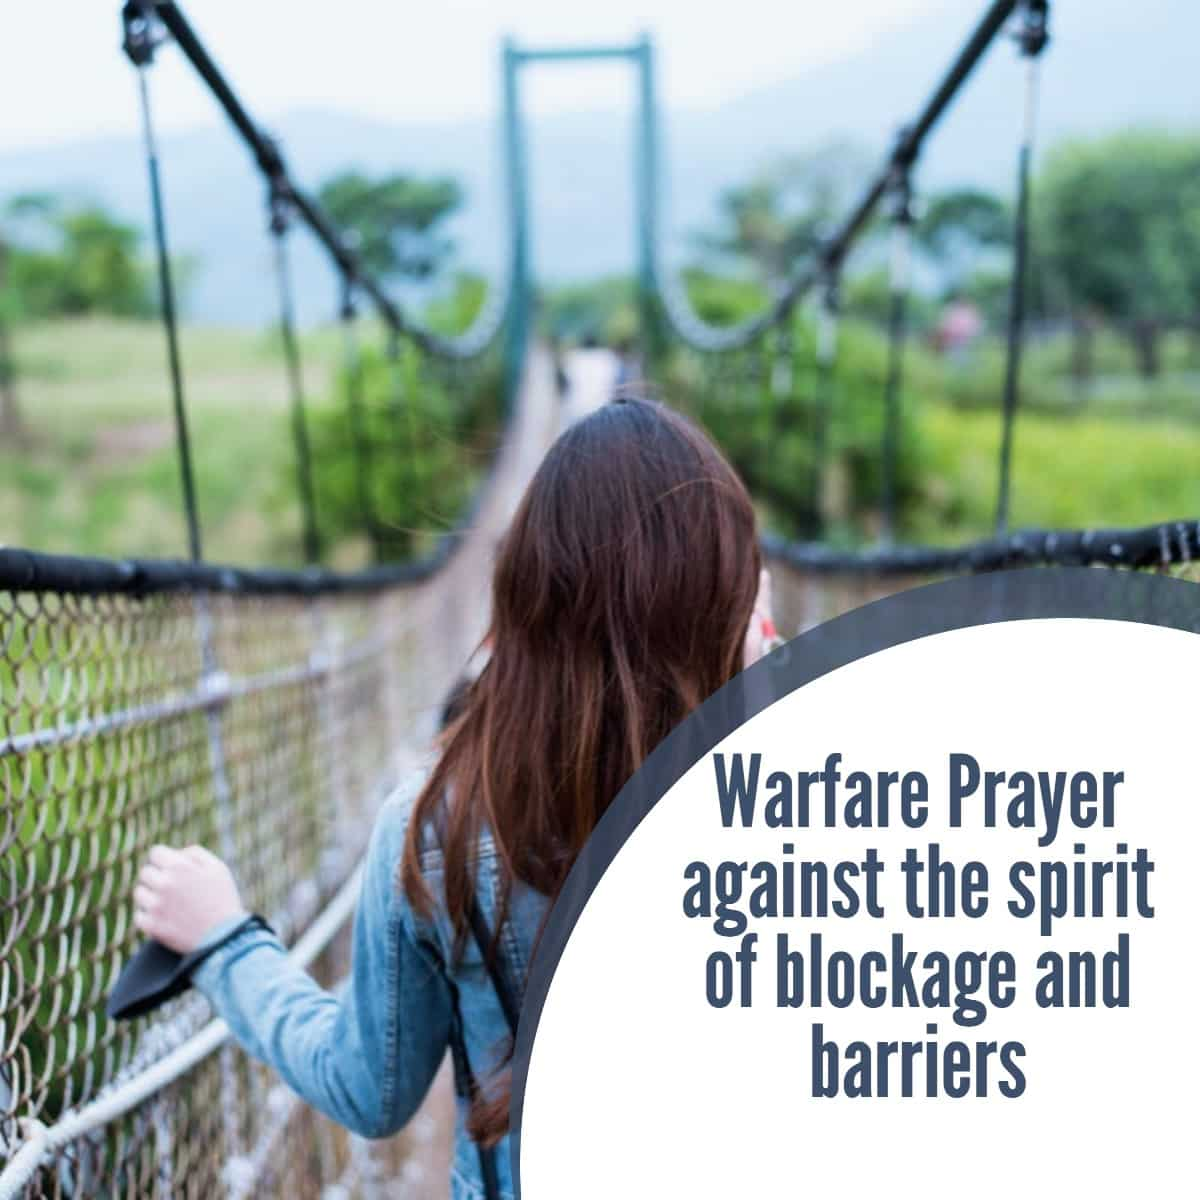 Warfare Prayer against the spirit of blockage and barriers